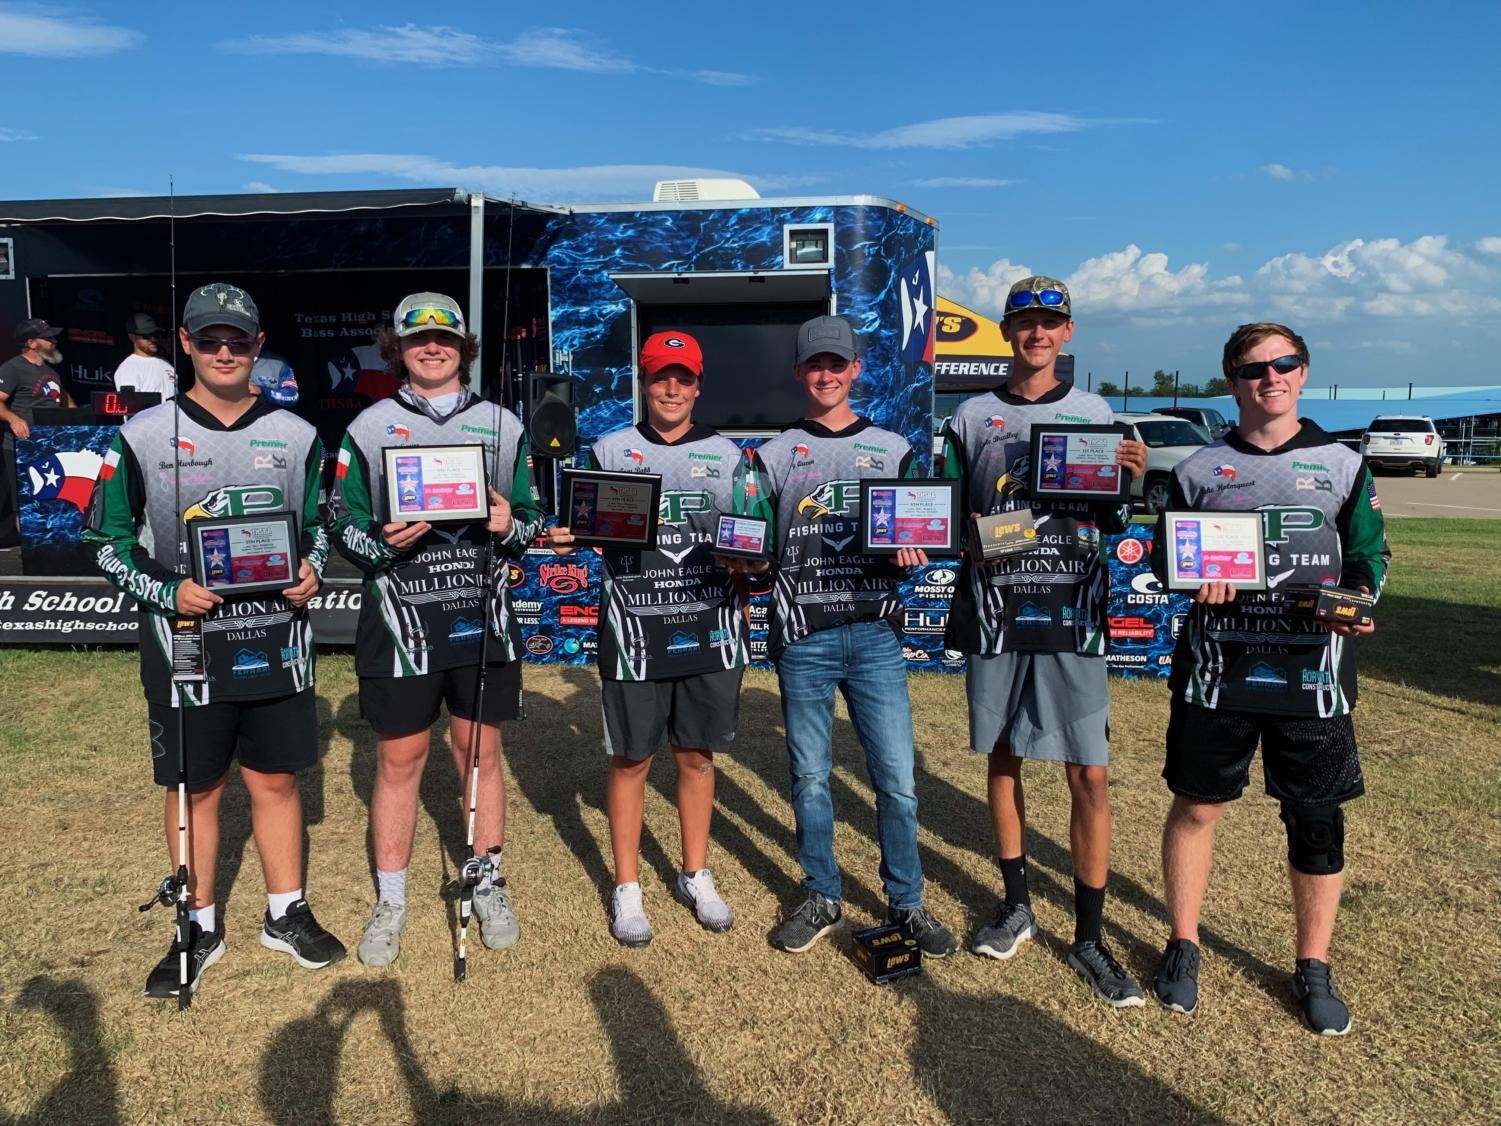 Members of the bass fishing team hold up awards after a tournament.